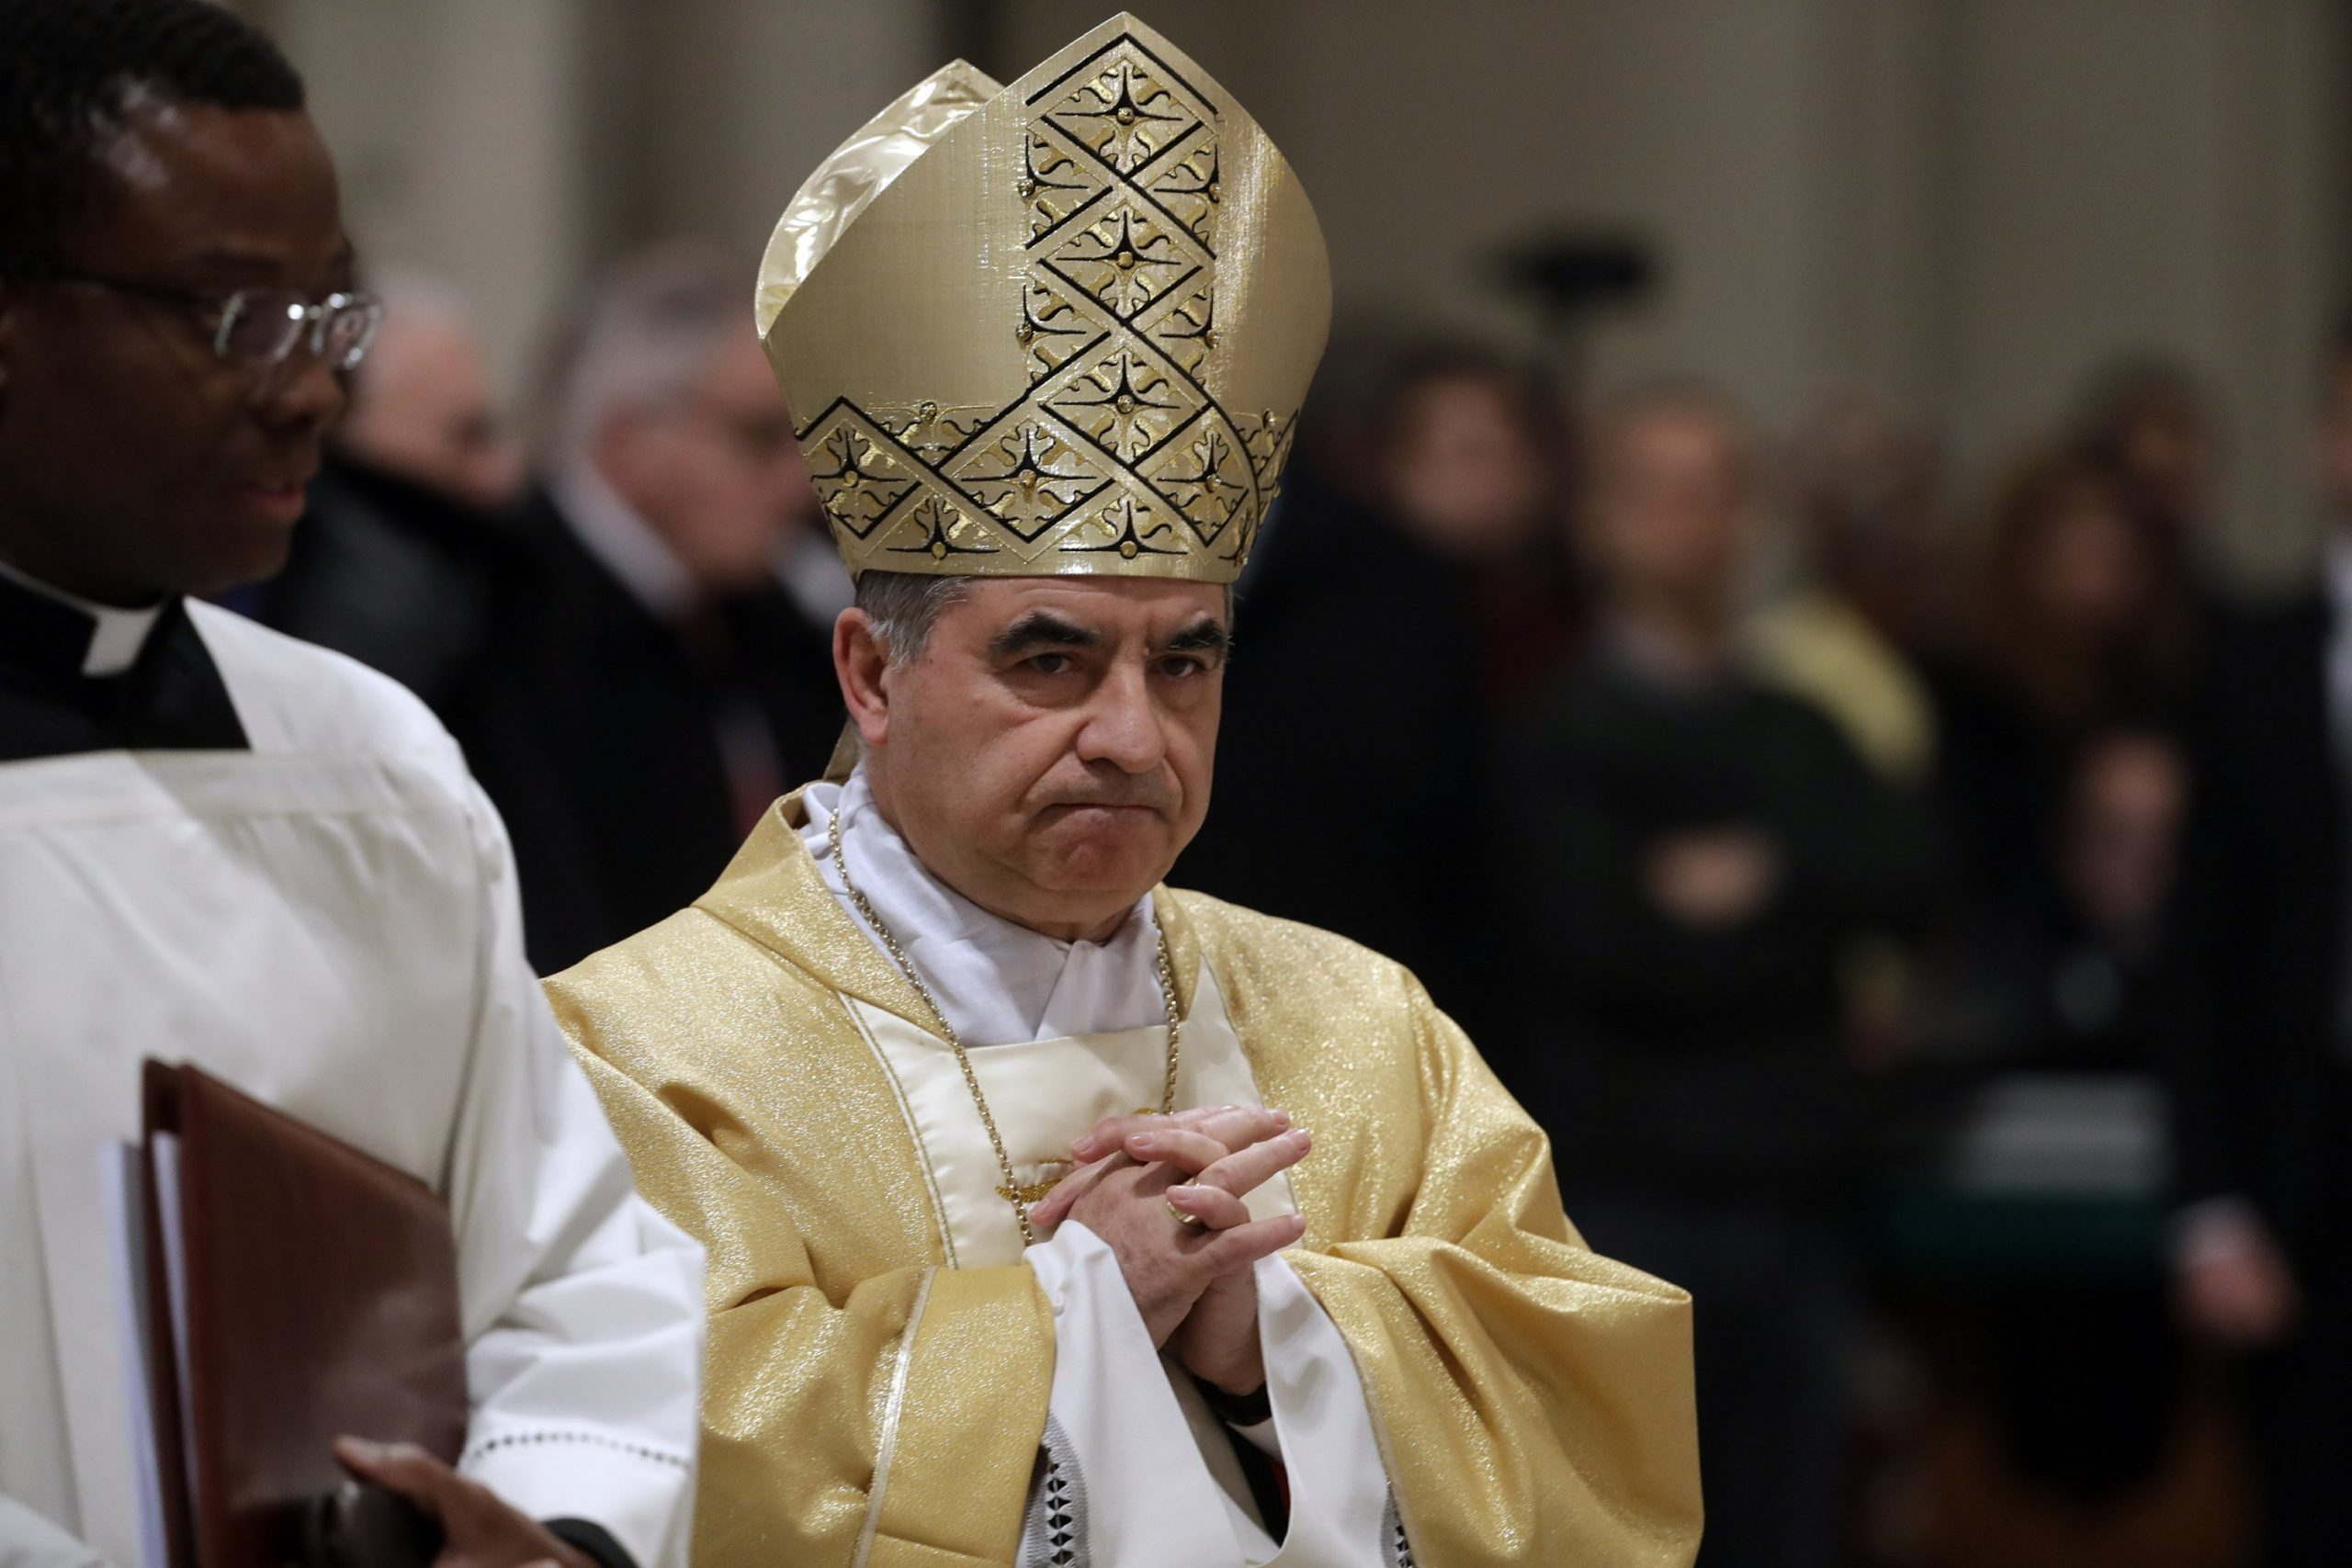 Powerful Vatican Cardinal Bessio resigns amid scandal